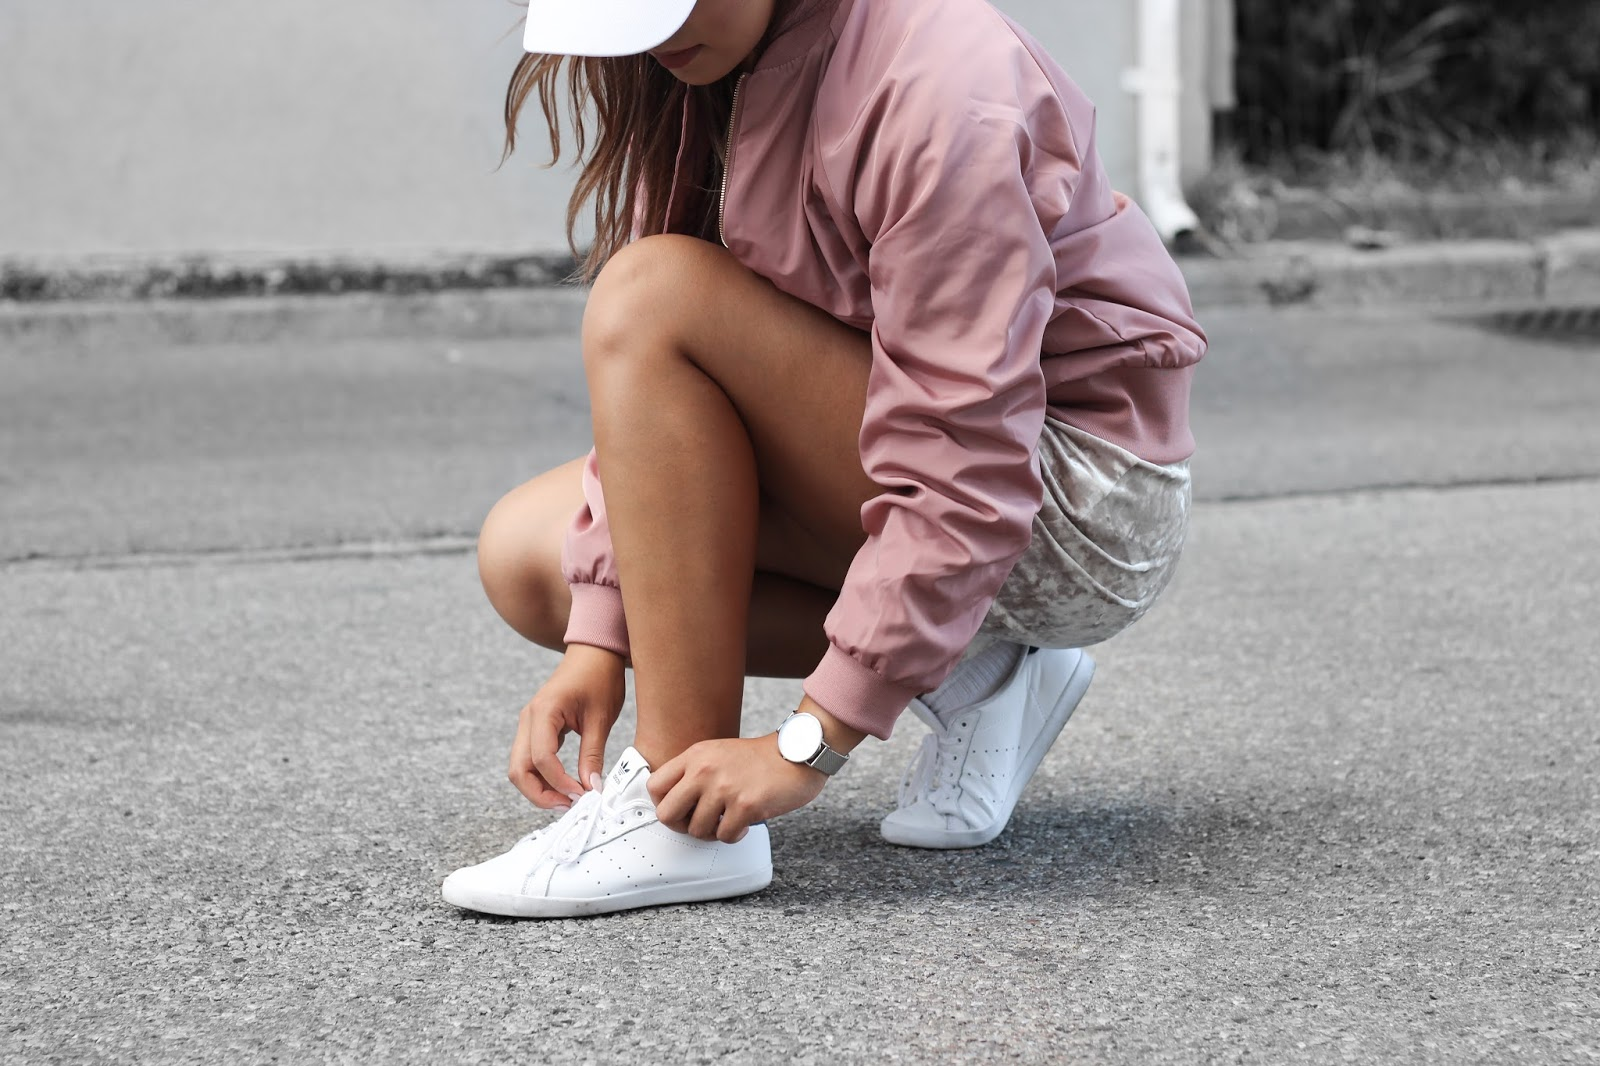 info for 5b8e5 89fb2 Town Shoes August Styling: Adidas Miss Stan Smith